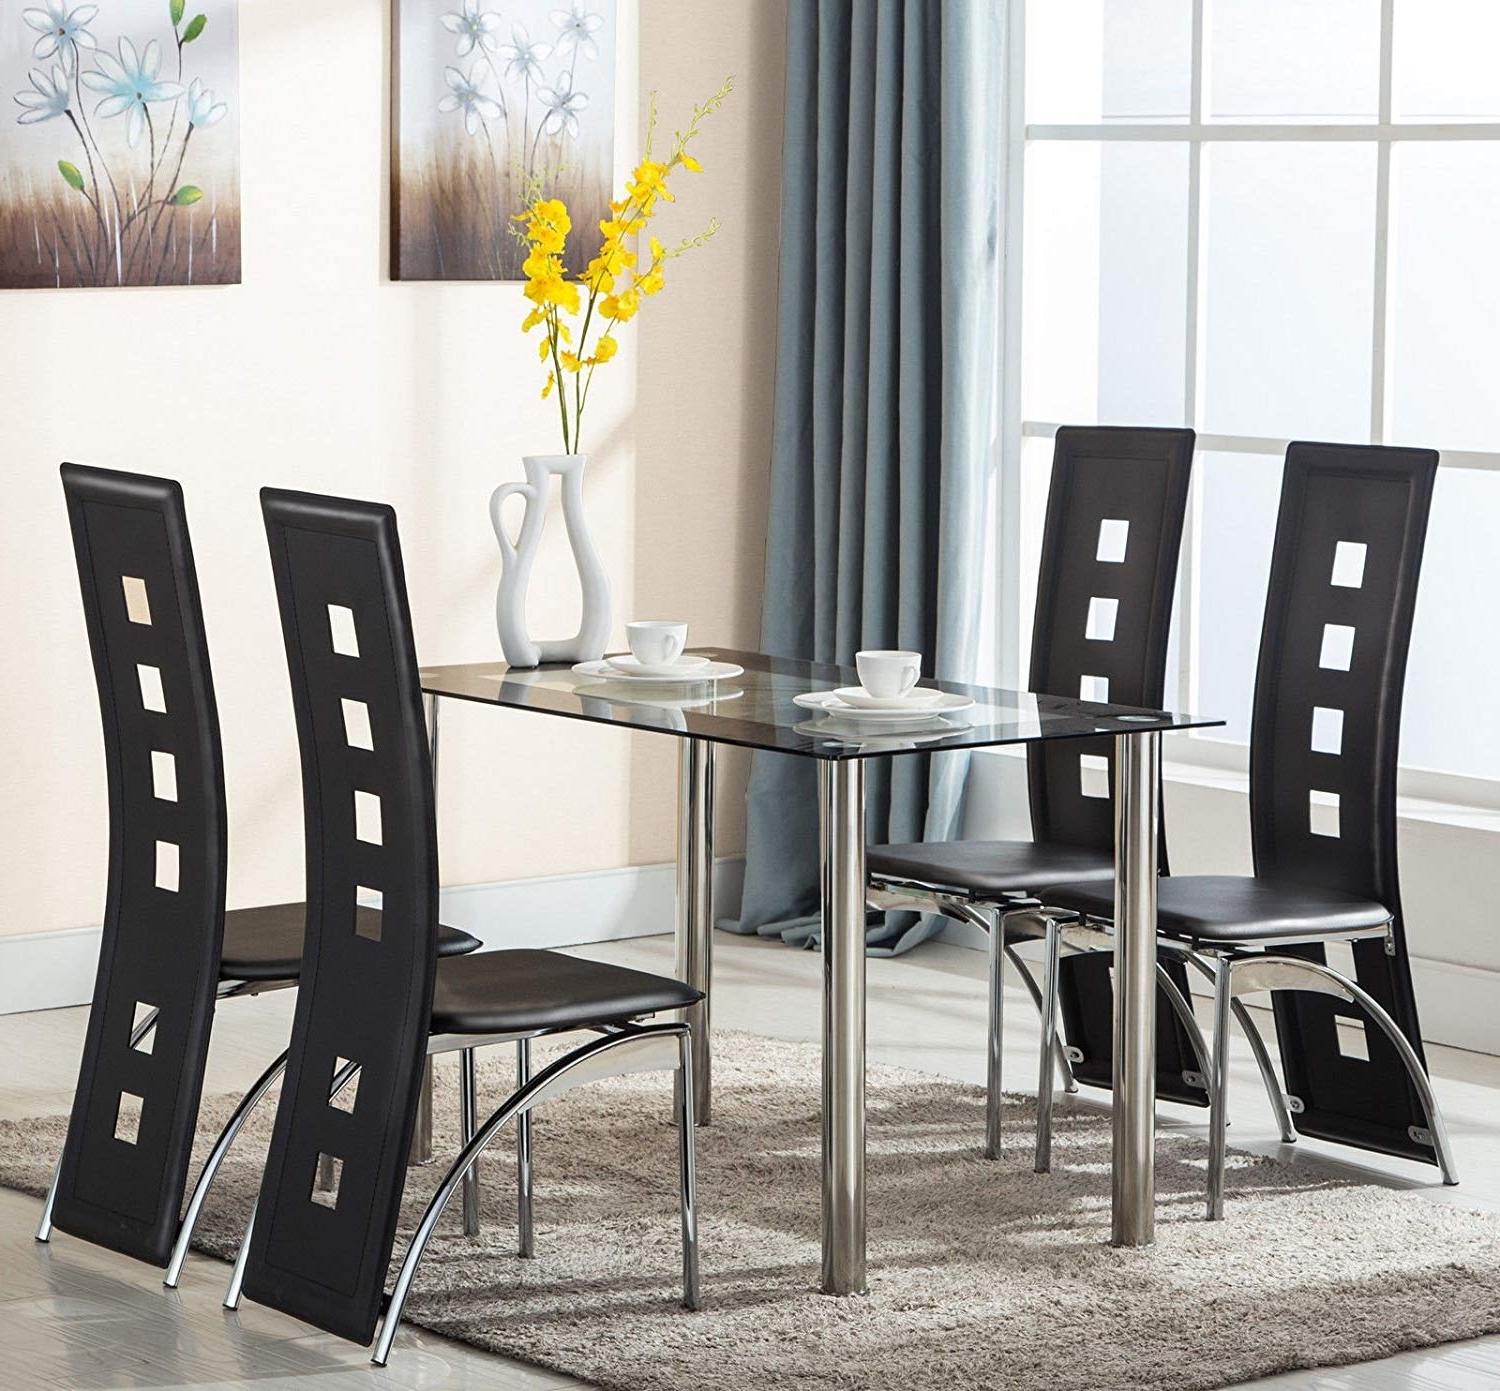 White Glass Dining Tables And Chairs Pertaining To Well Known Mecor Glass Dining Table And Faux Leather Chairs Dining Kitchen (View 19 of 25)